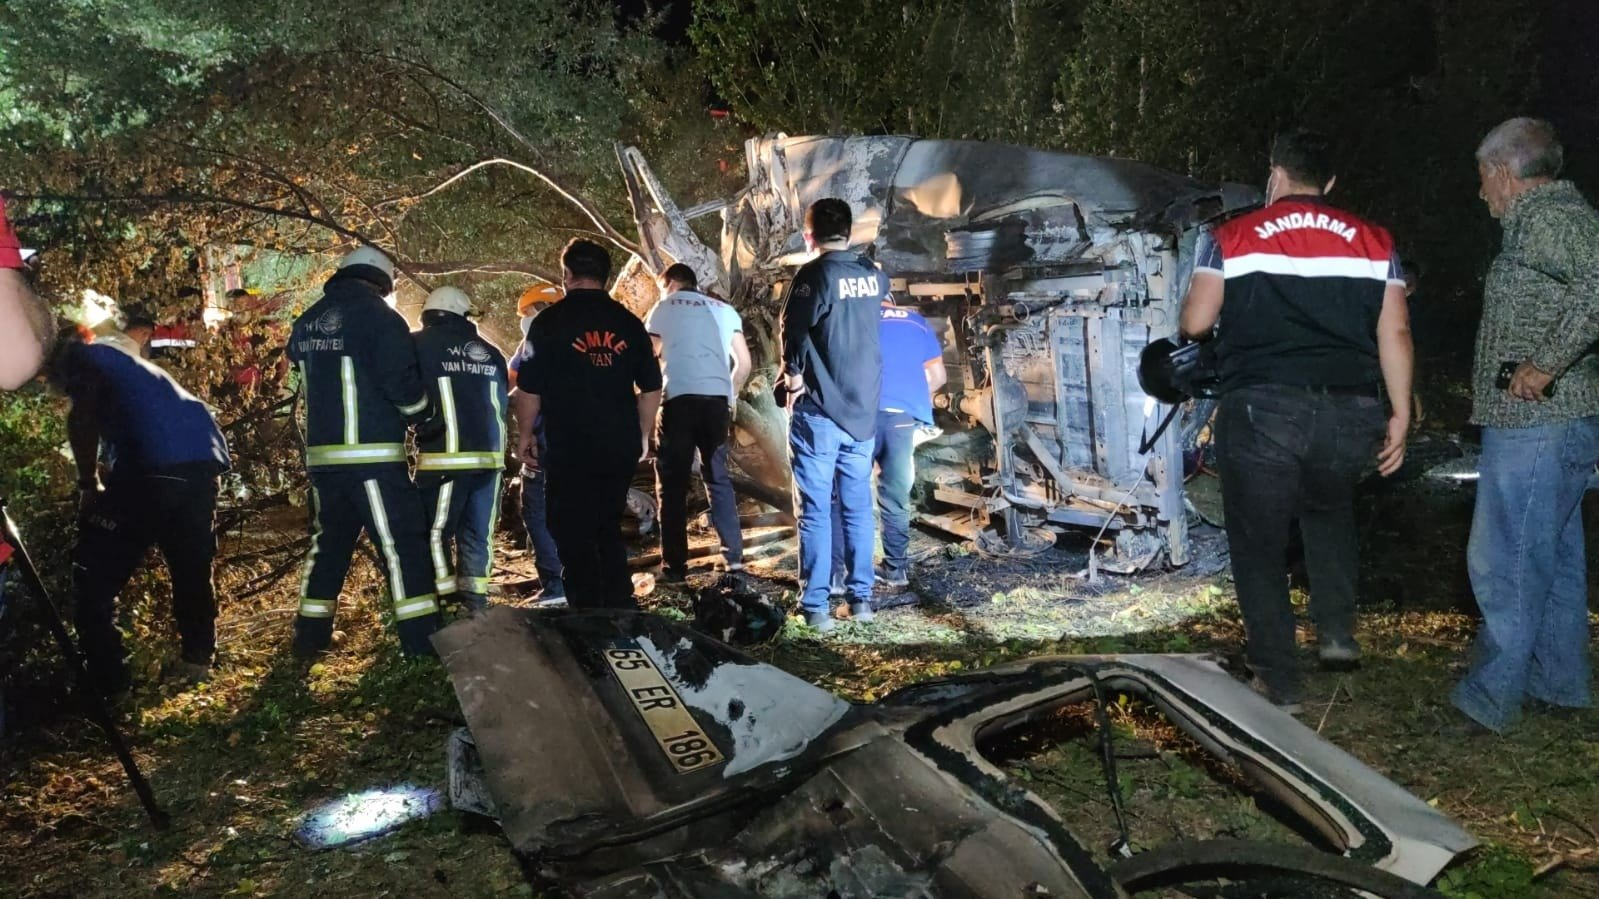 Rescue personnel and security forces inspect the crash scene in Van, Turkey, July 11, 2021. (IHA Photo)